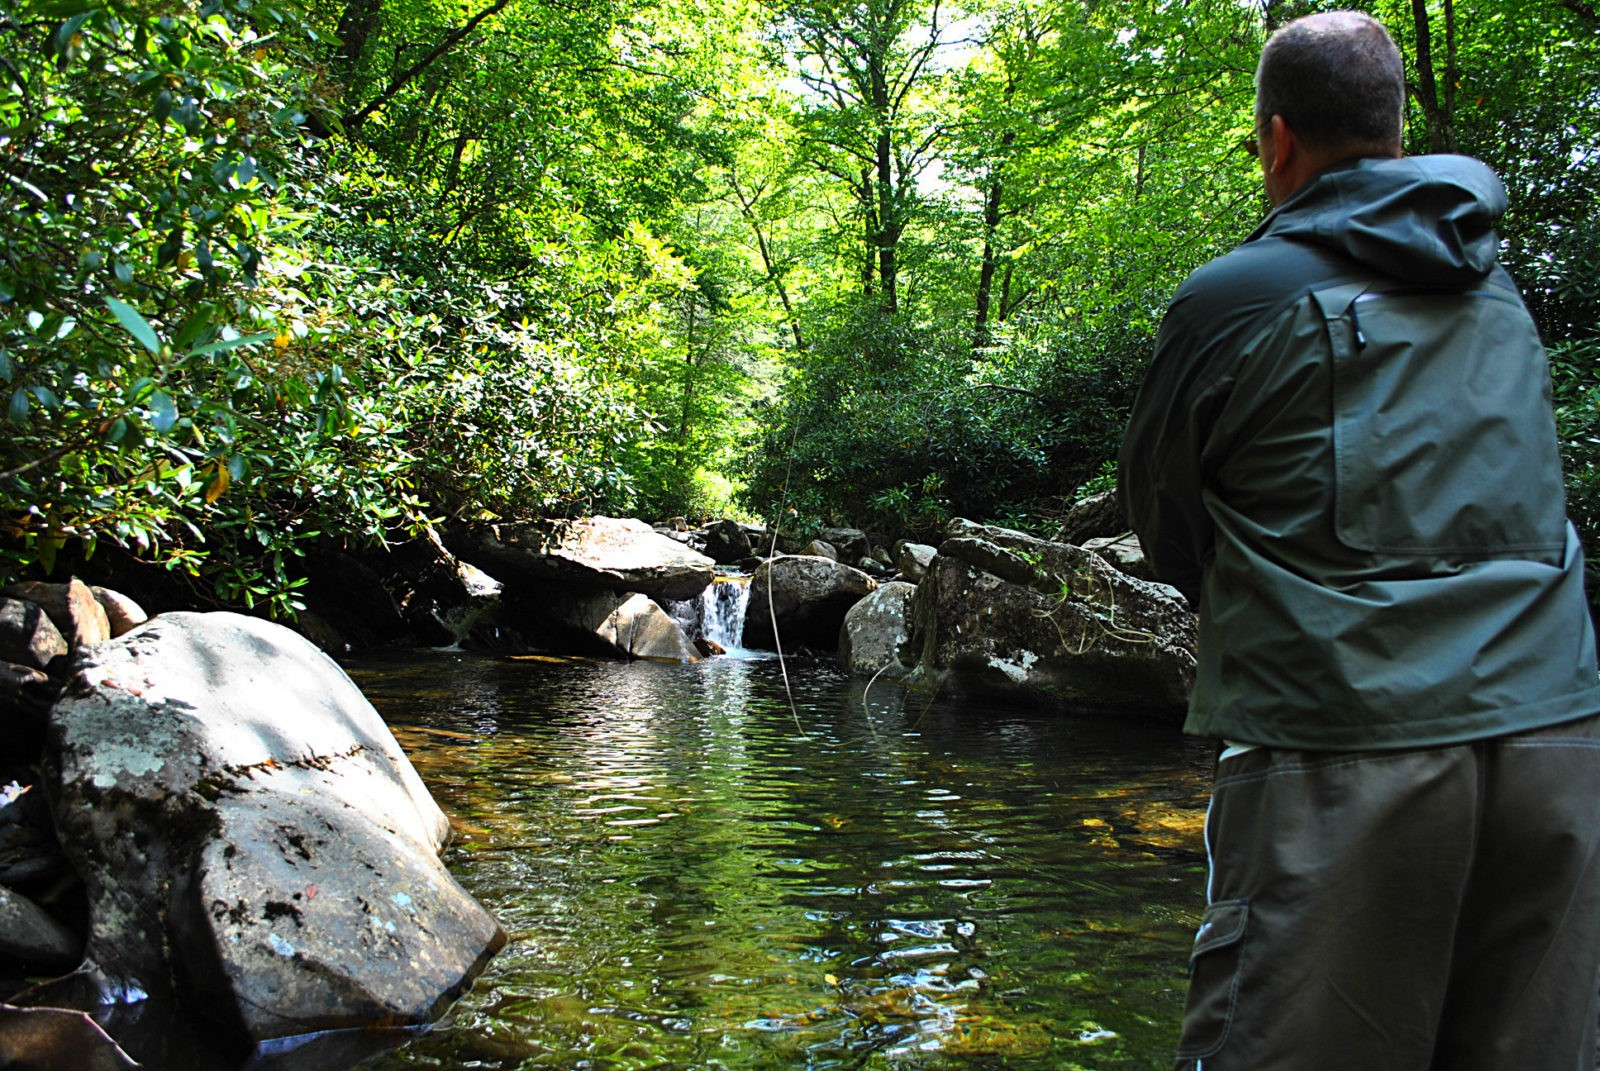 Rates guided fly fishing in cherokee ncguided fly for Fly fishing cherokee nc